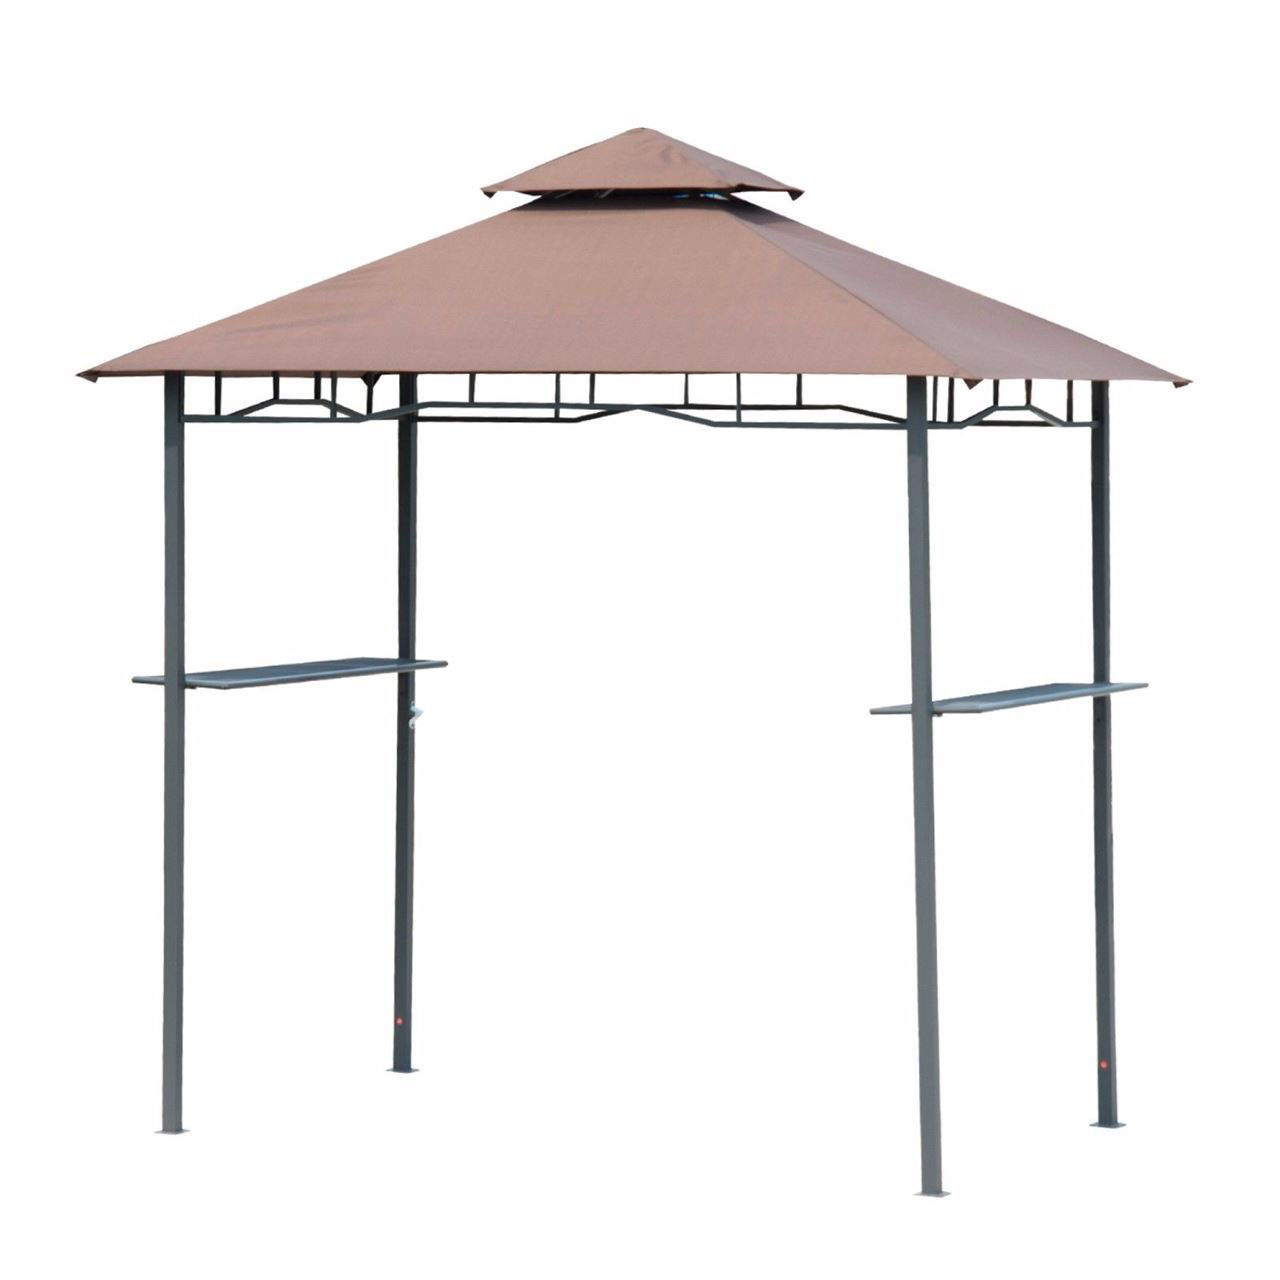 Picture of Outdoor BBQ Grill Canopy Tent Double-tier - 8 ft